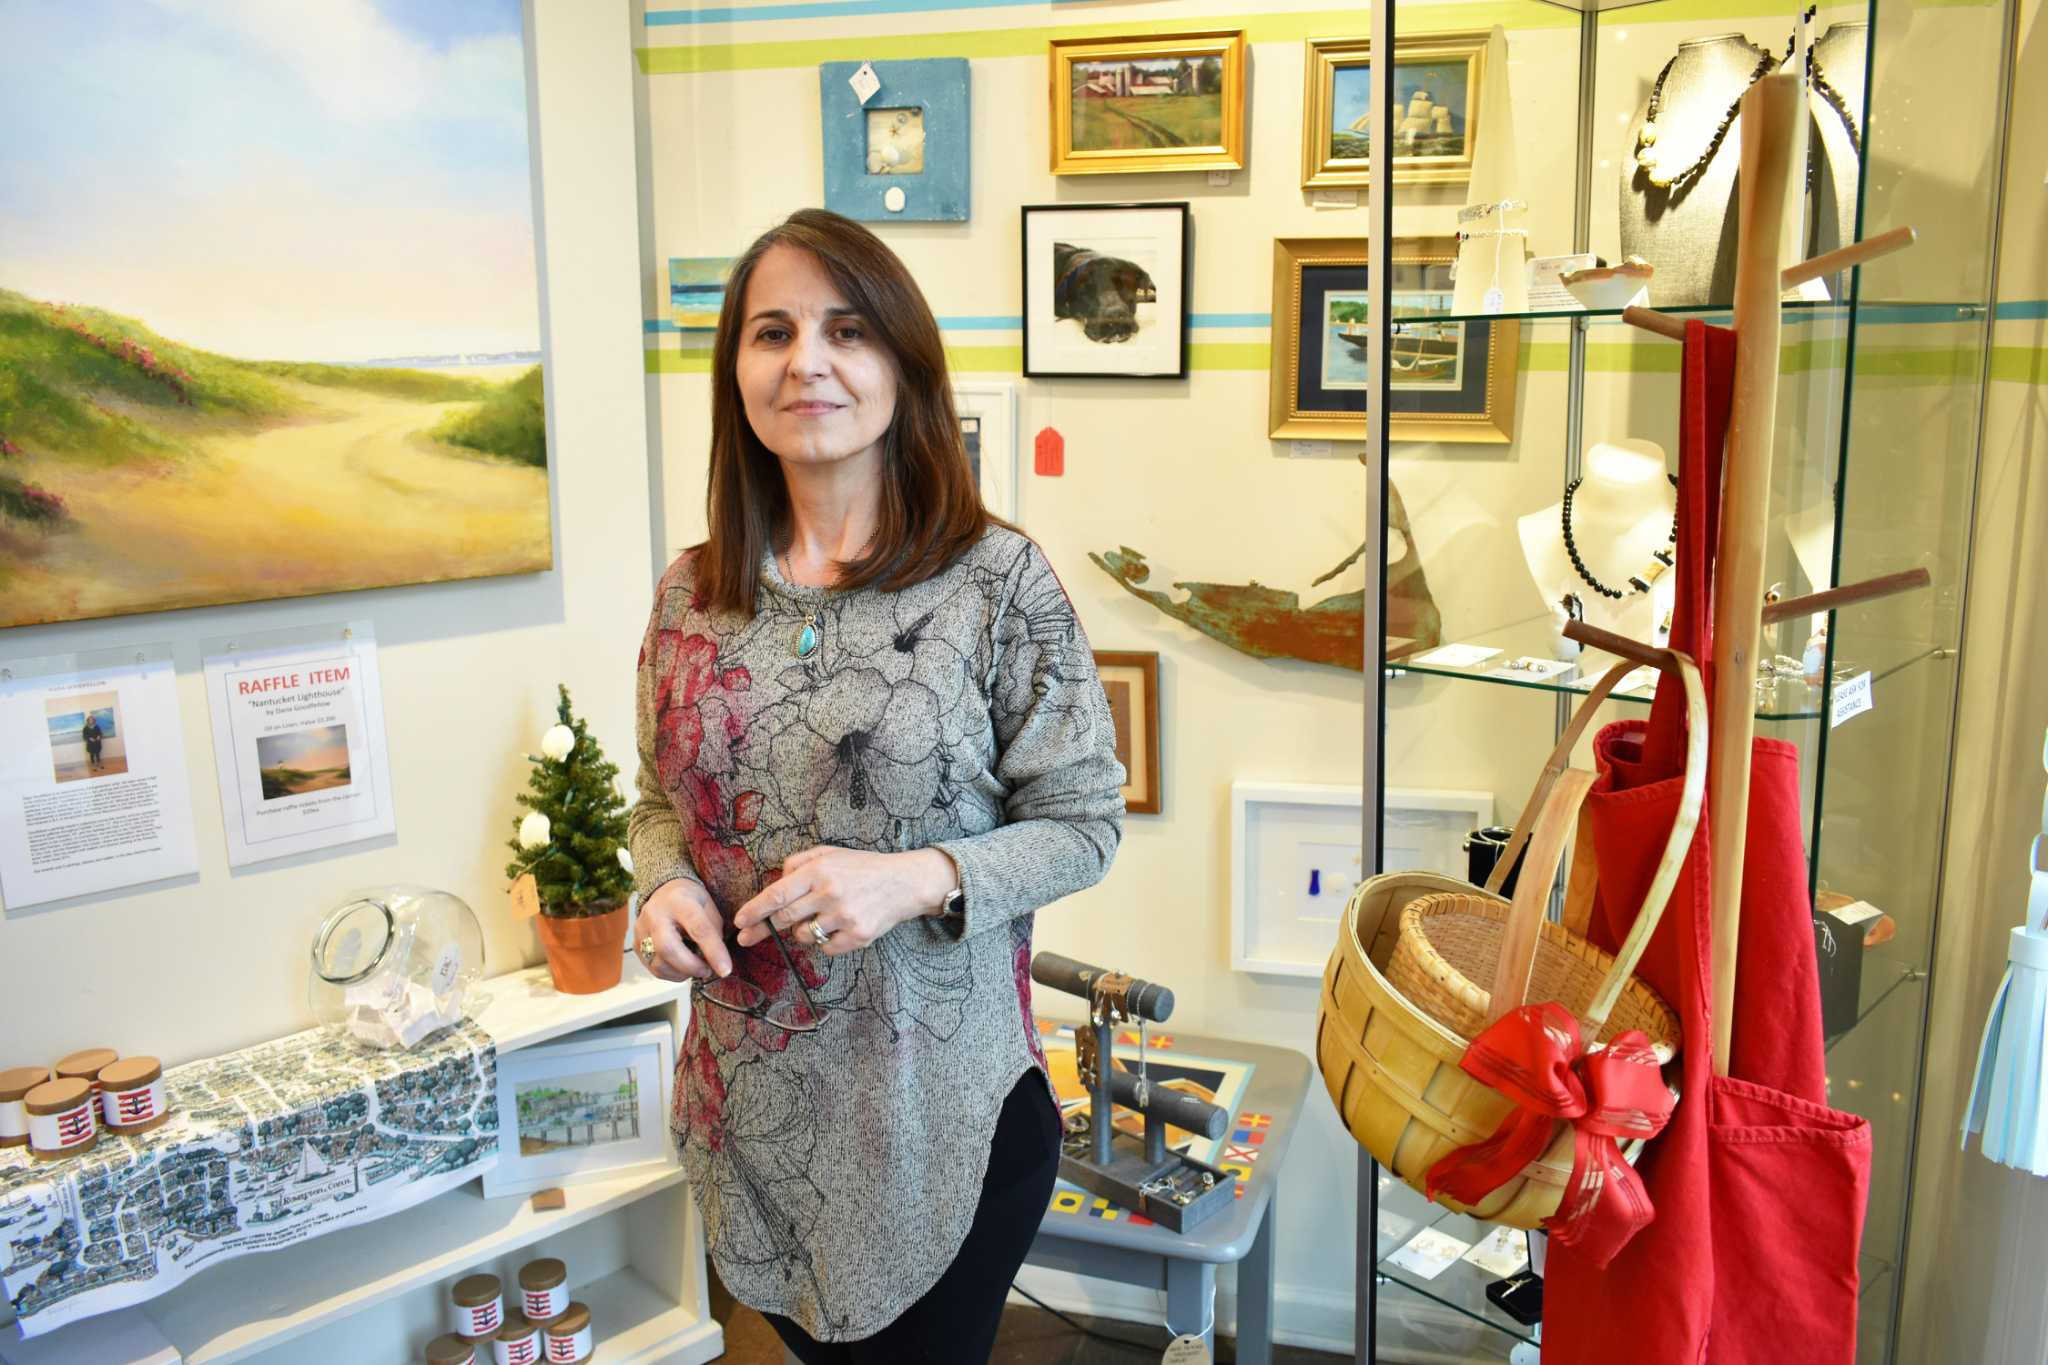 Forged in norwalk startup jeweler crafts creations in for Craft store norwalk ct